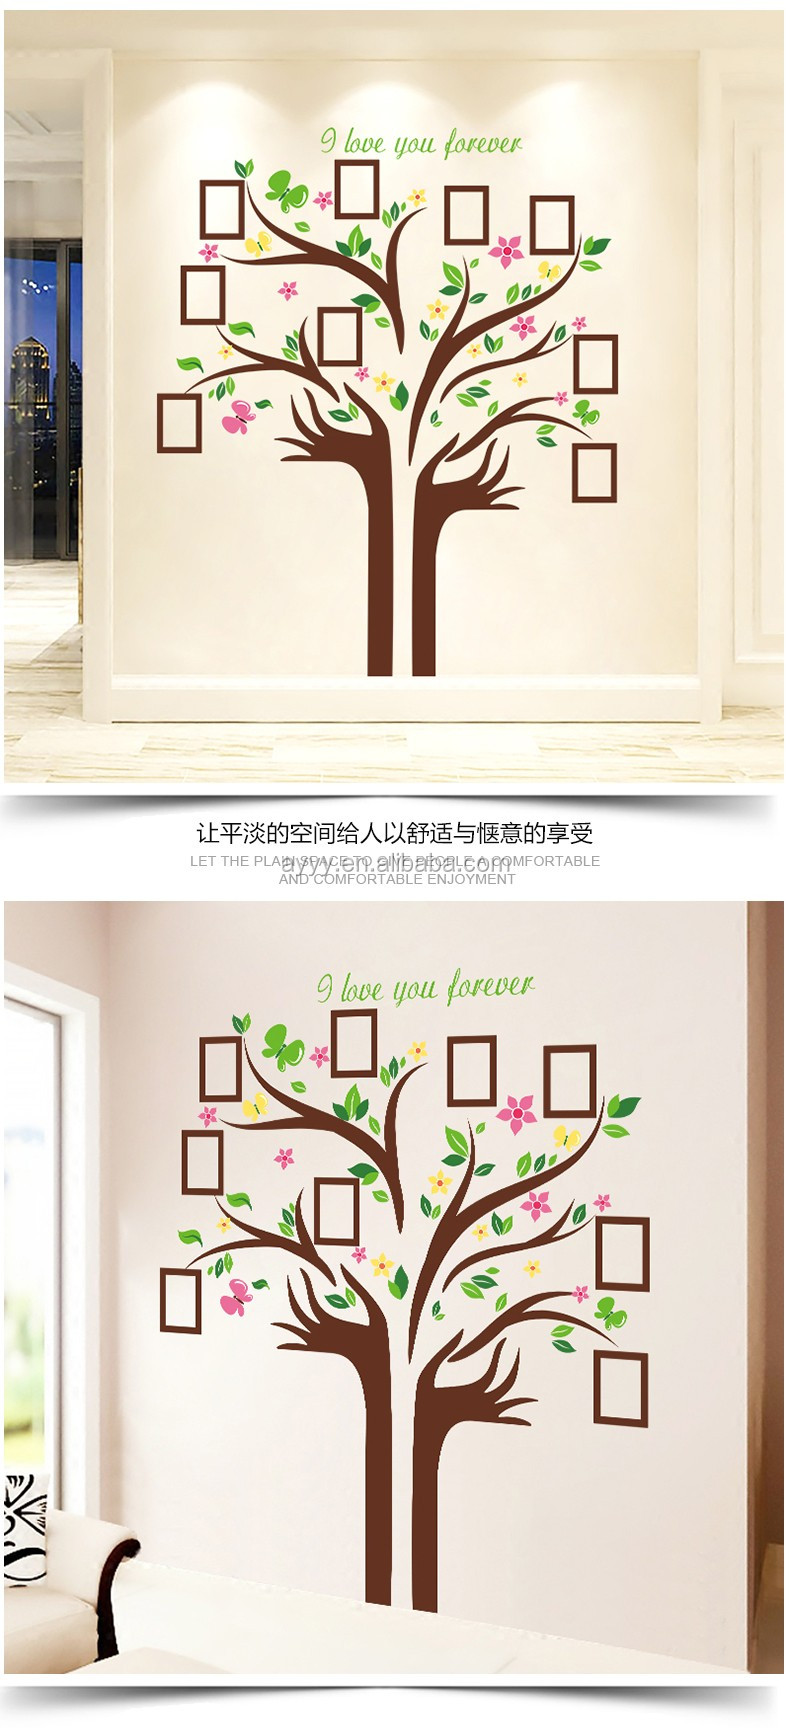 Hm94001 modern decor big family tree photo frame wall sticker hm94001 modern decor big family tree photo frame wall sticker creativity diy home bedroom tv removable amipublicfo Choice Image